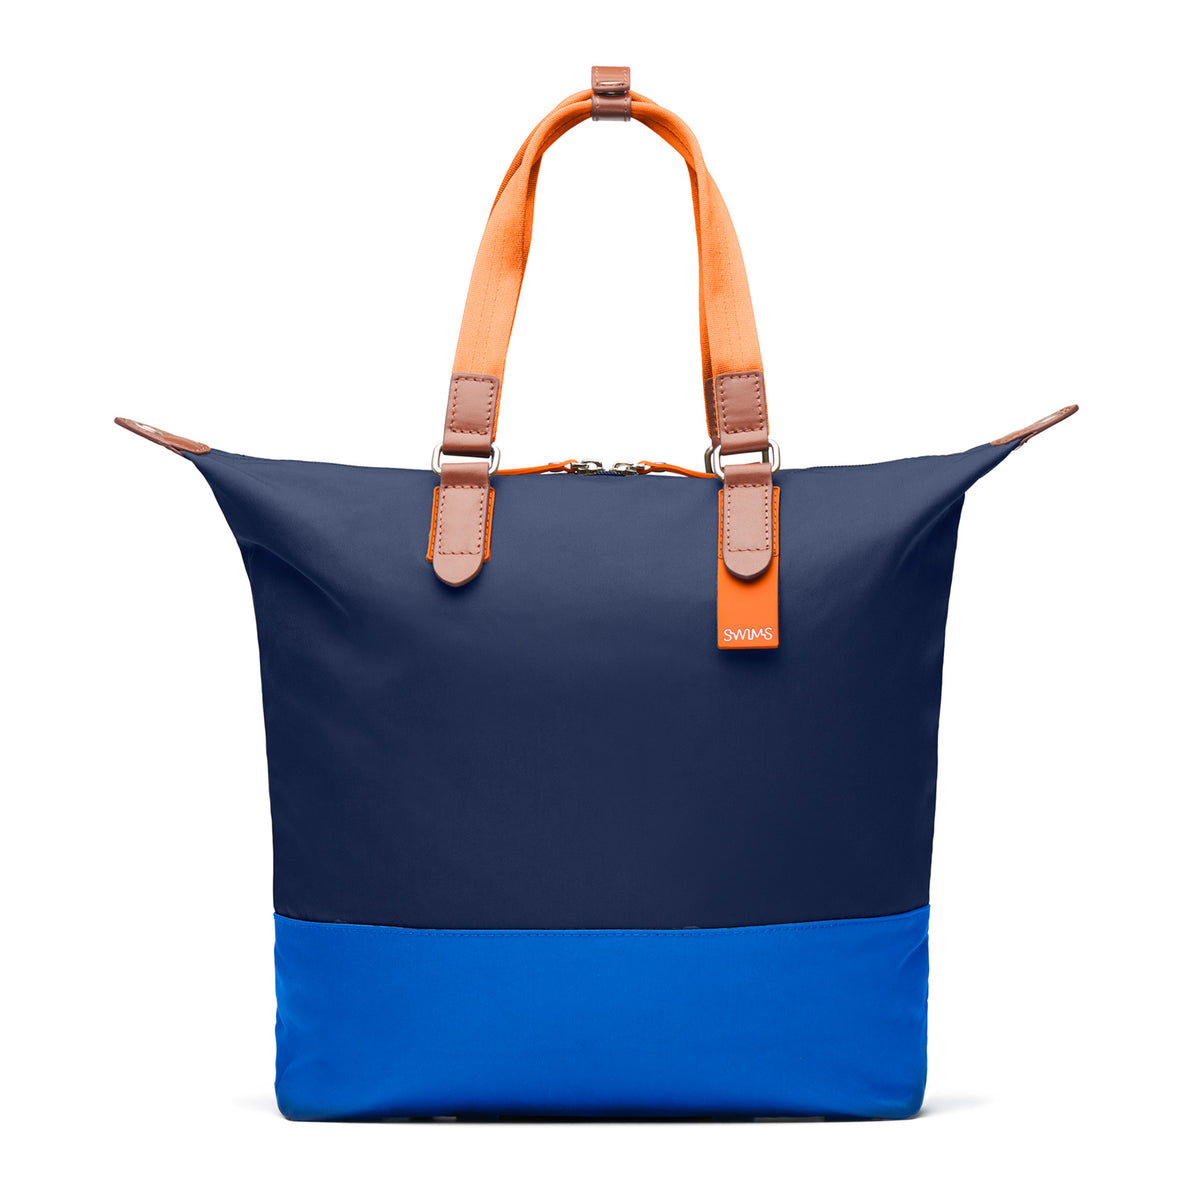 Tote - background::white,variant::Navy